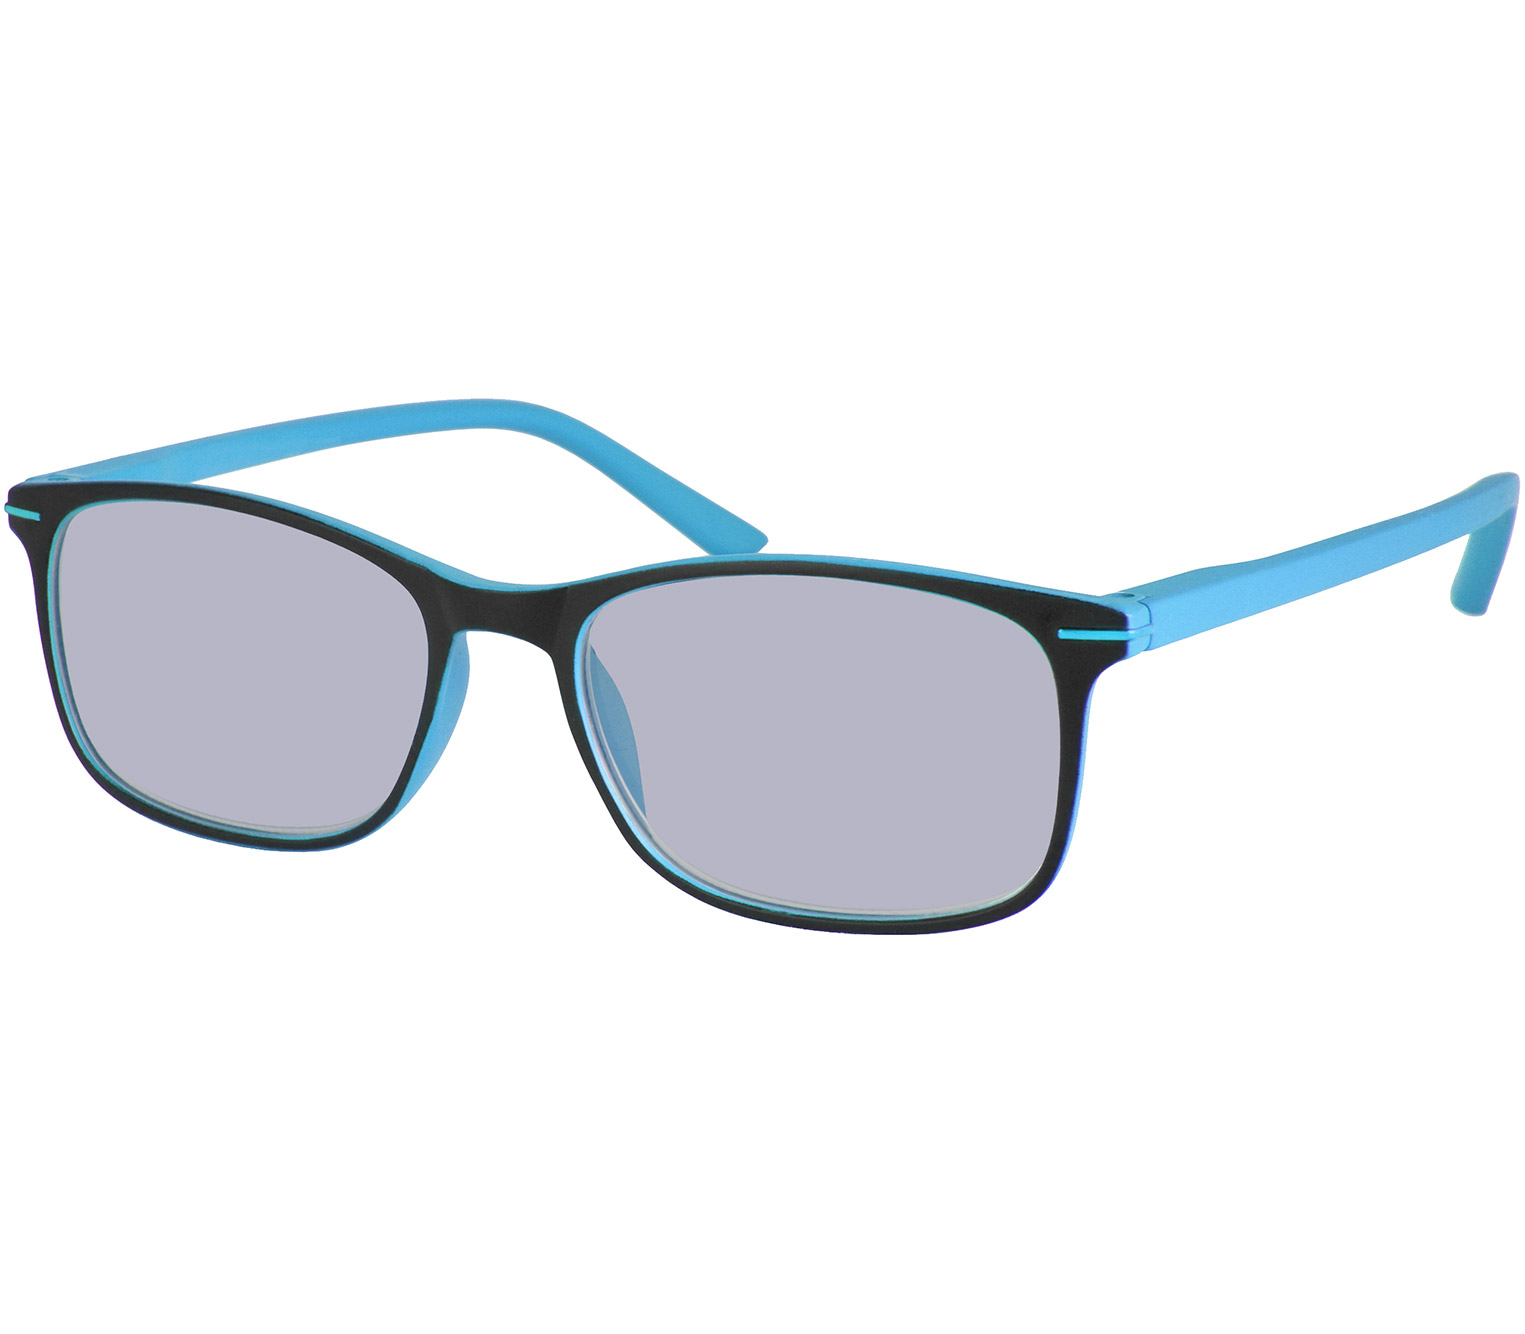 Main Image (Angle) - Mirage (Blue) Classic Sun Readers